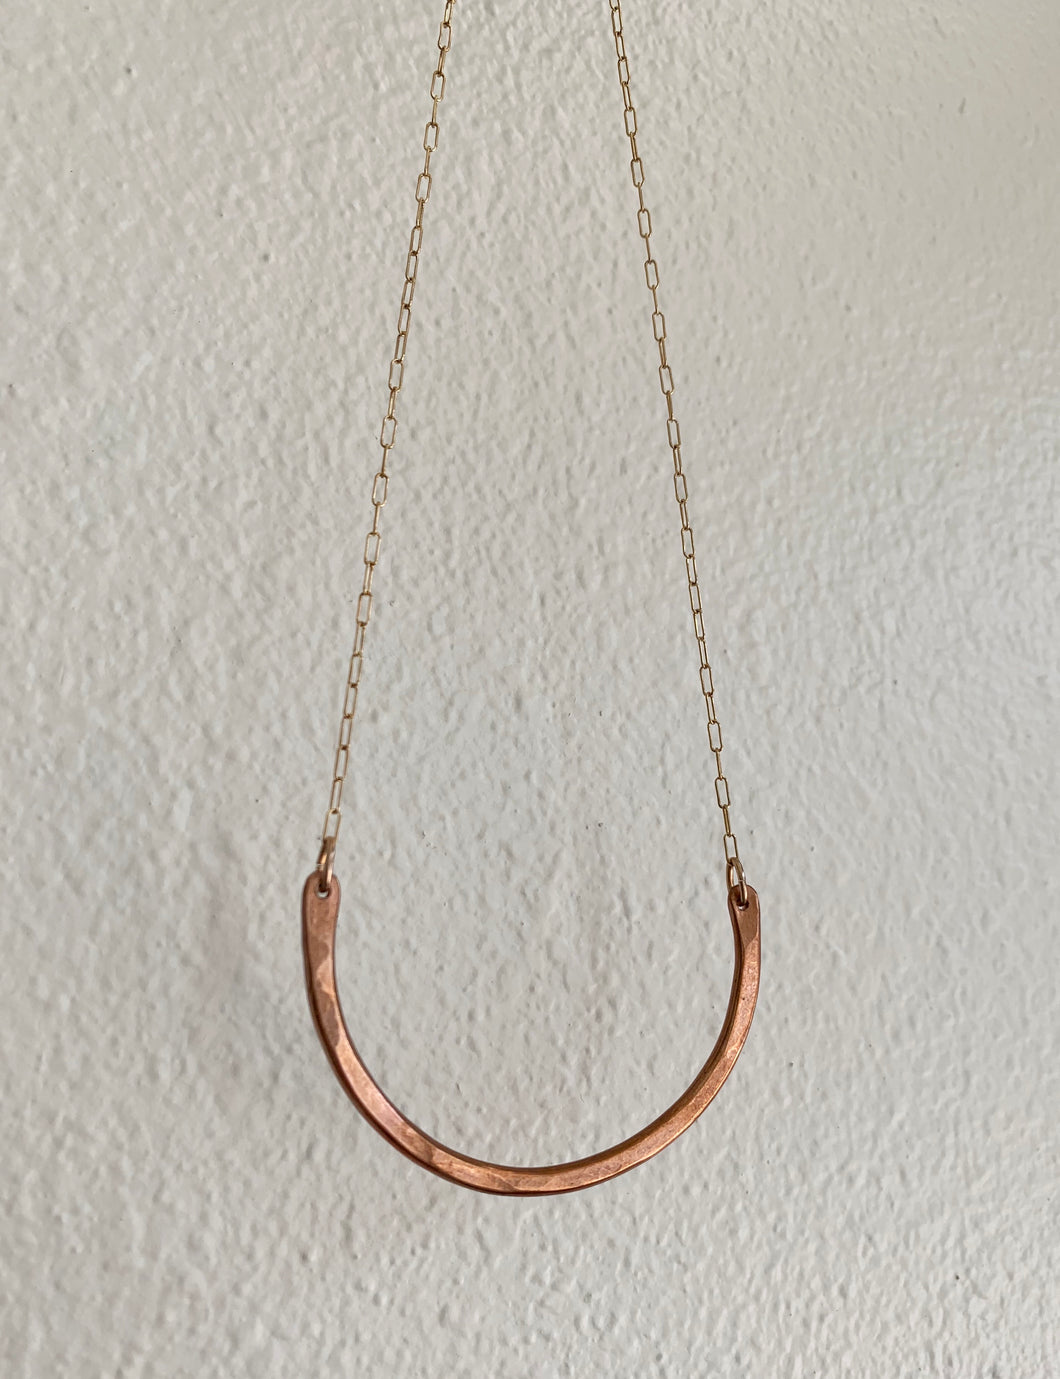 necklace, copper curved bar